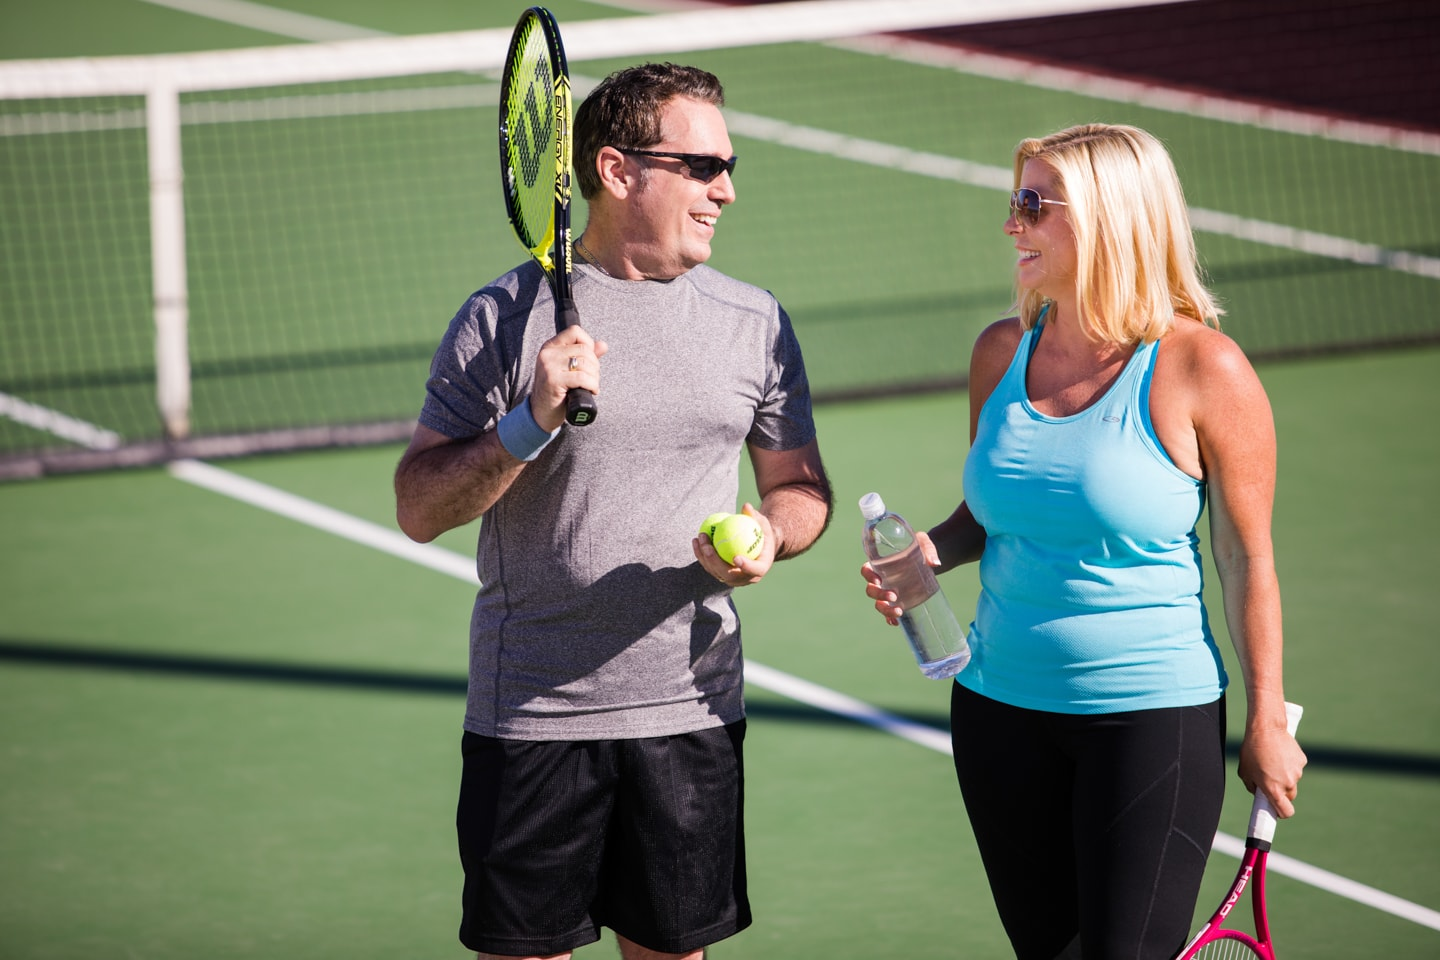 A man and woman converse with each other during a Pickleball tournament.